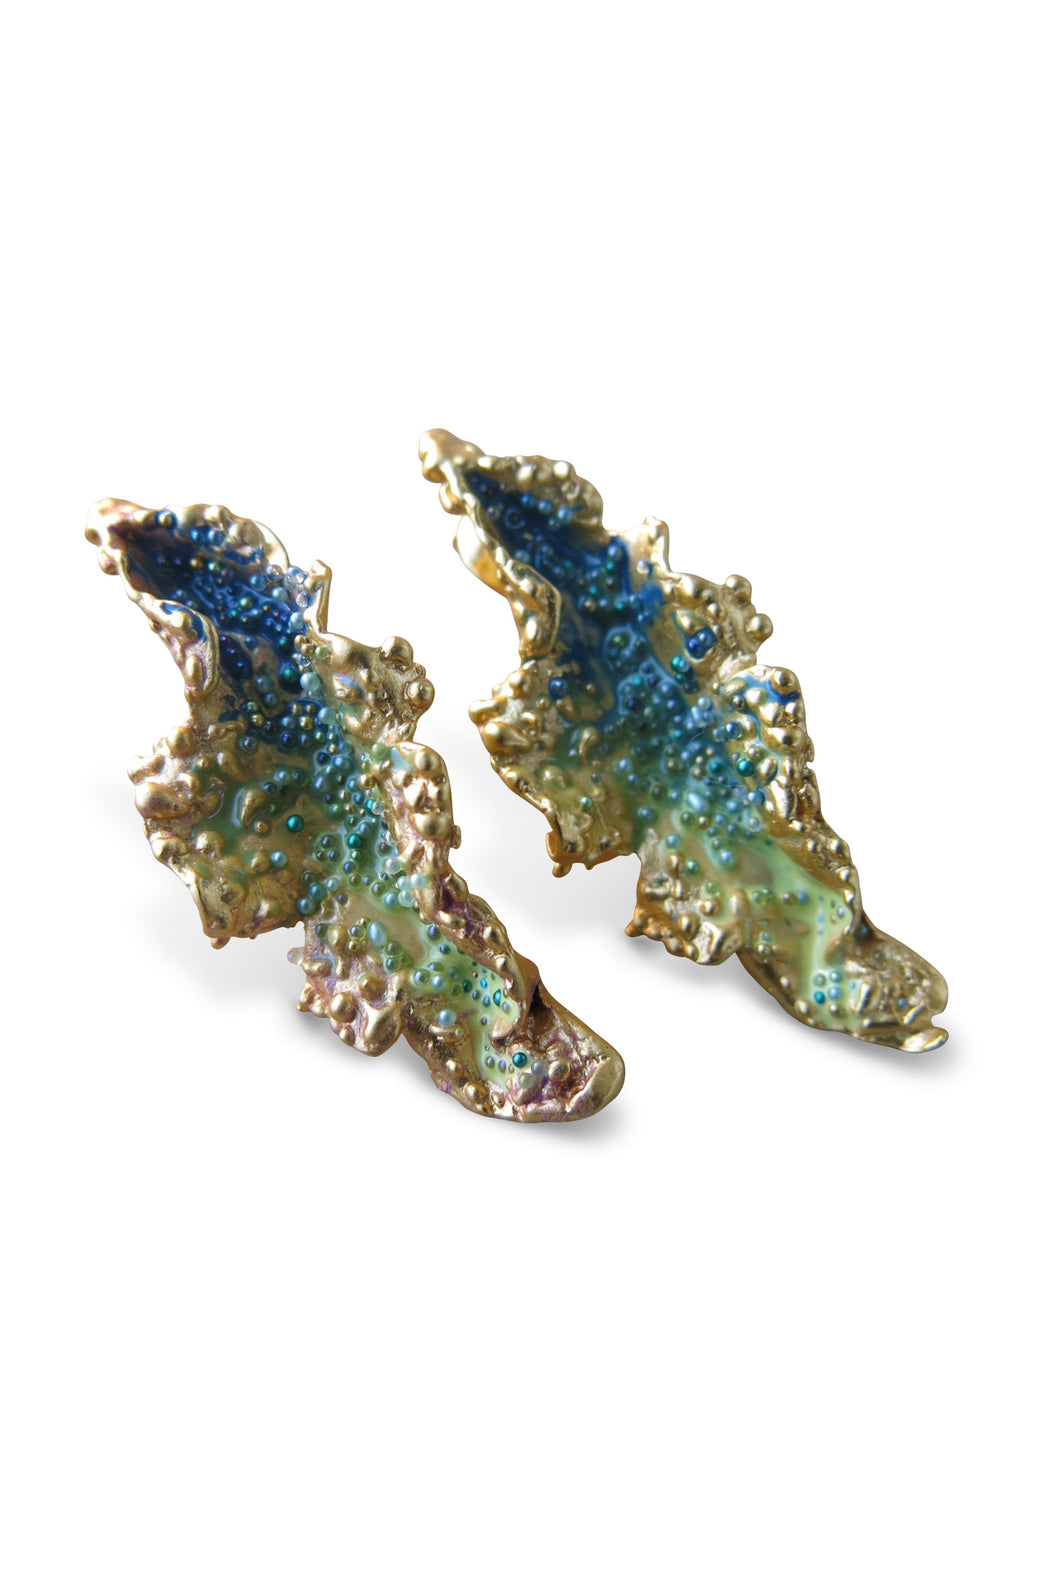 Cristatella earrings